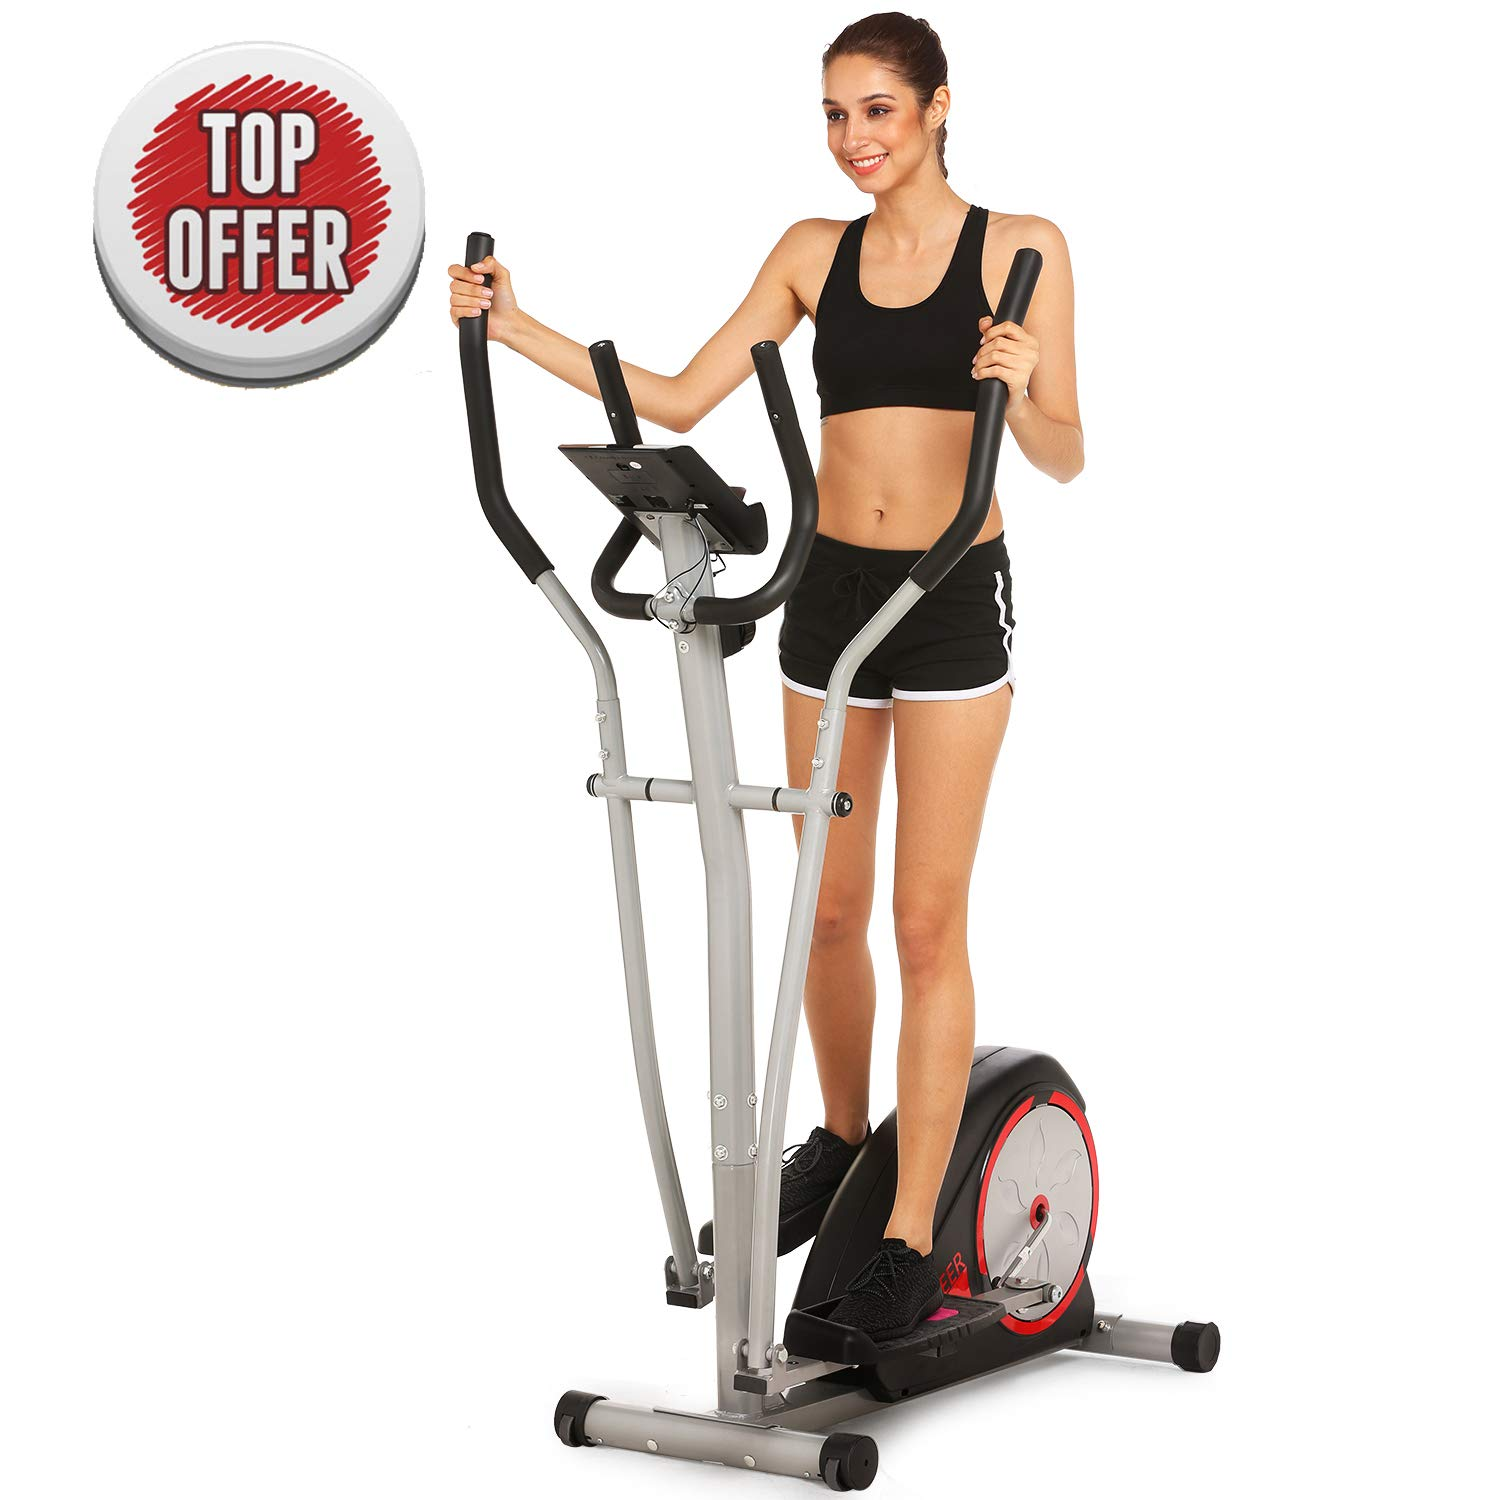 ncient Elliptical Trainer Magnetic Control Smooth Quiet Elliptical Machine Trainer,Top Levels Elliptical Trainer (Black-2)